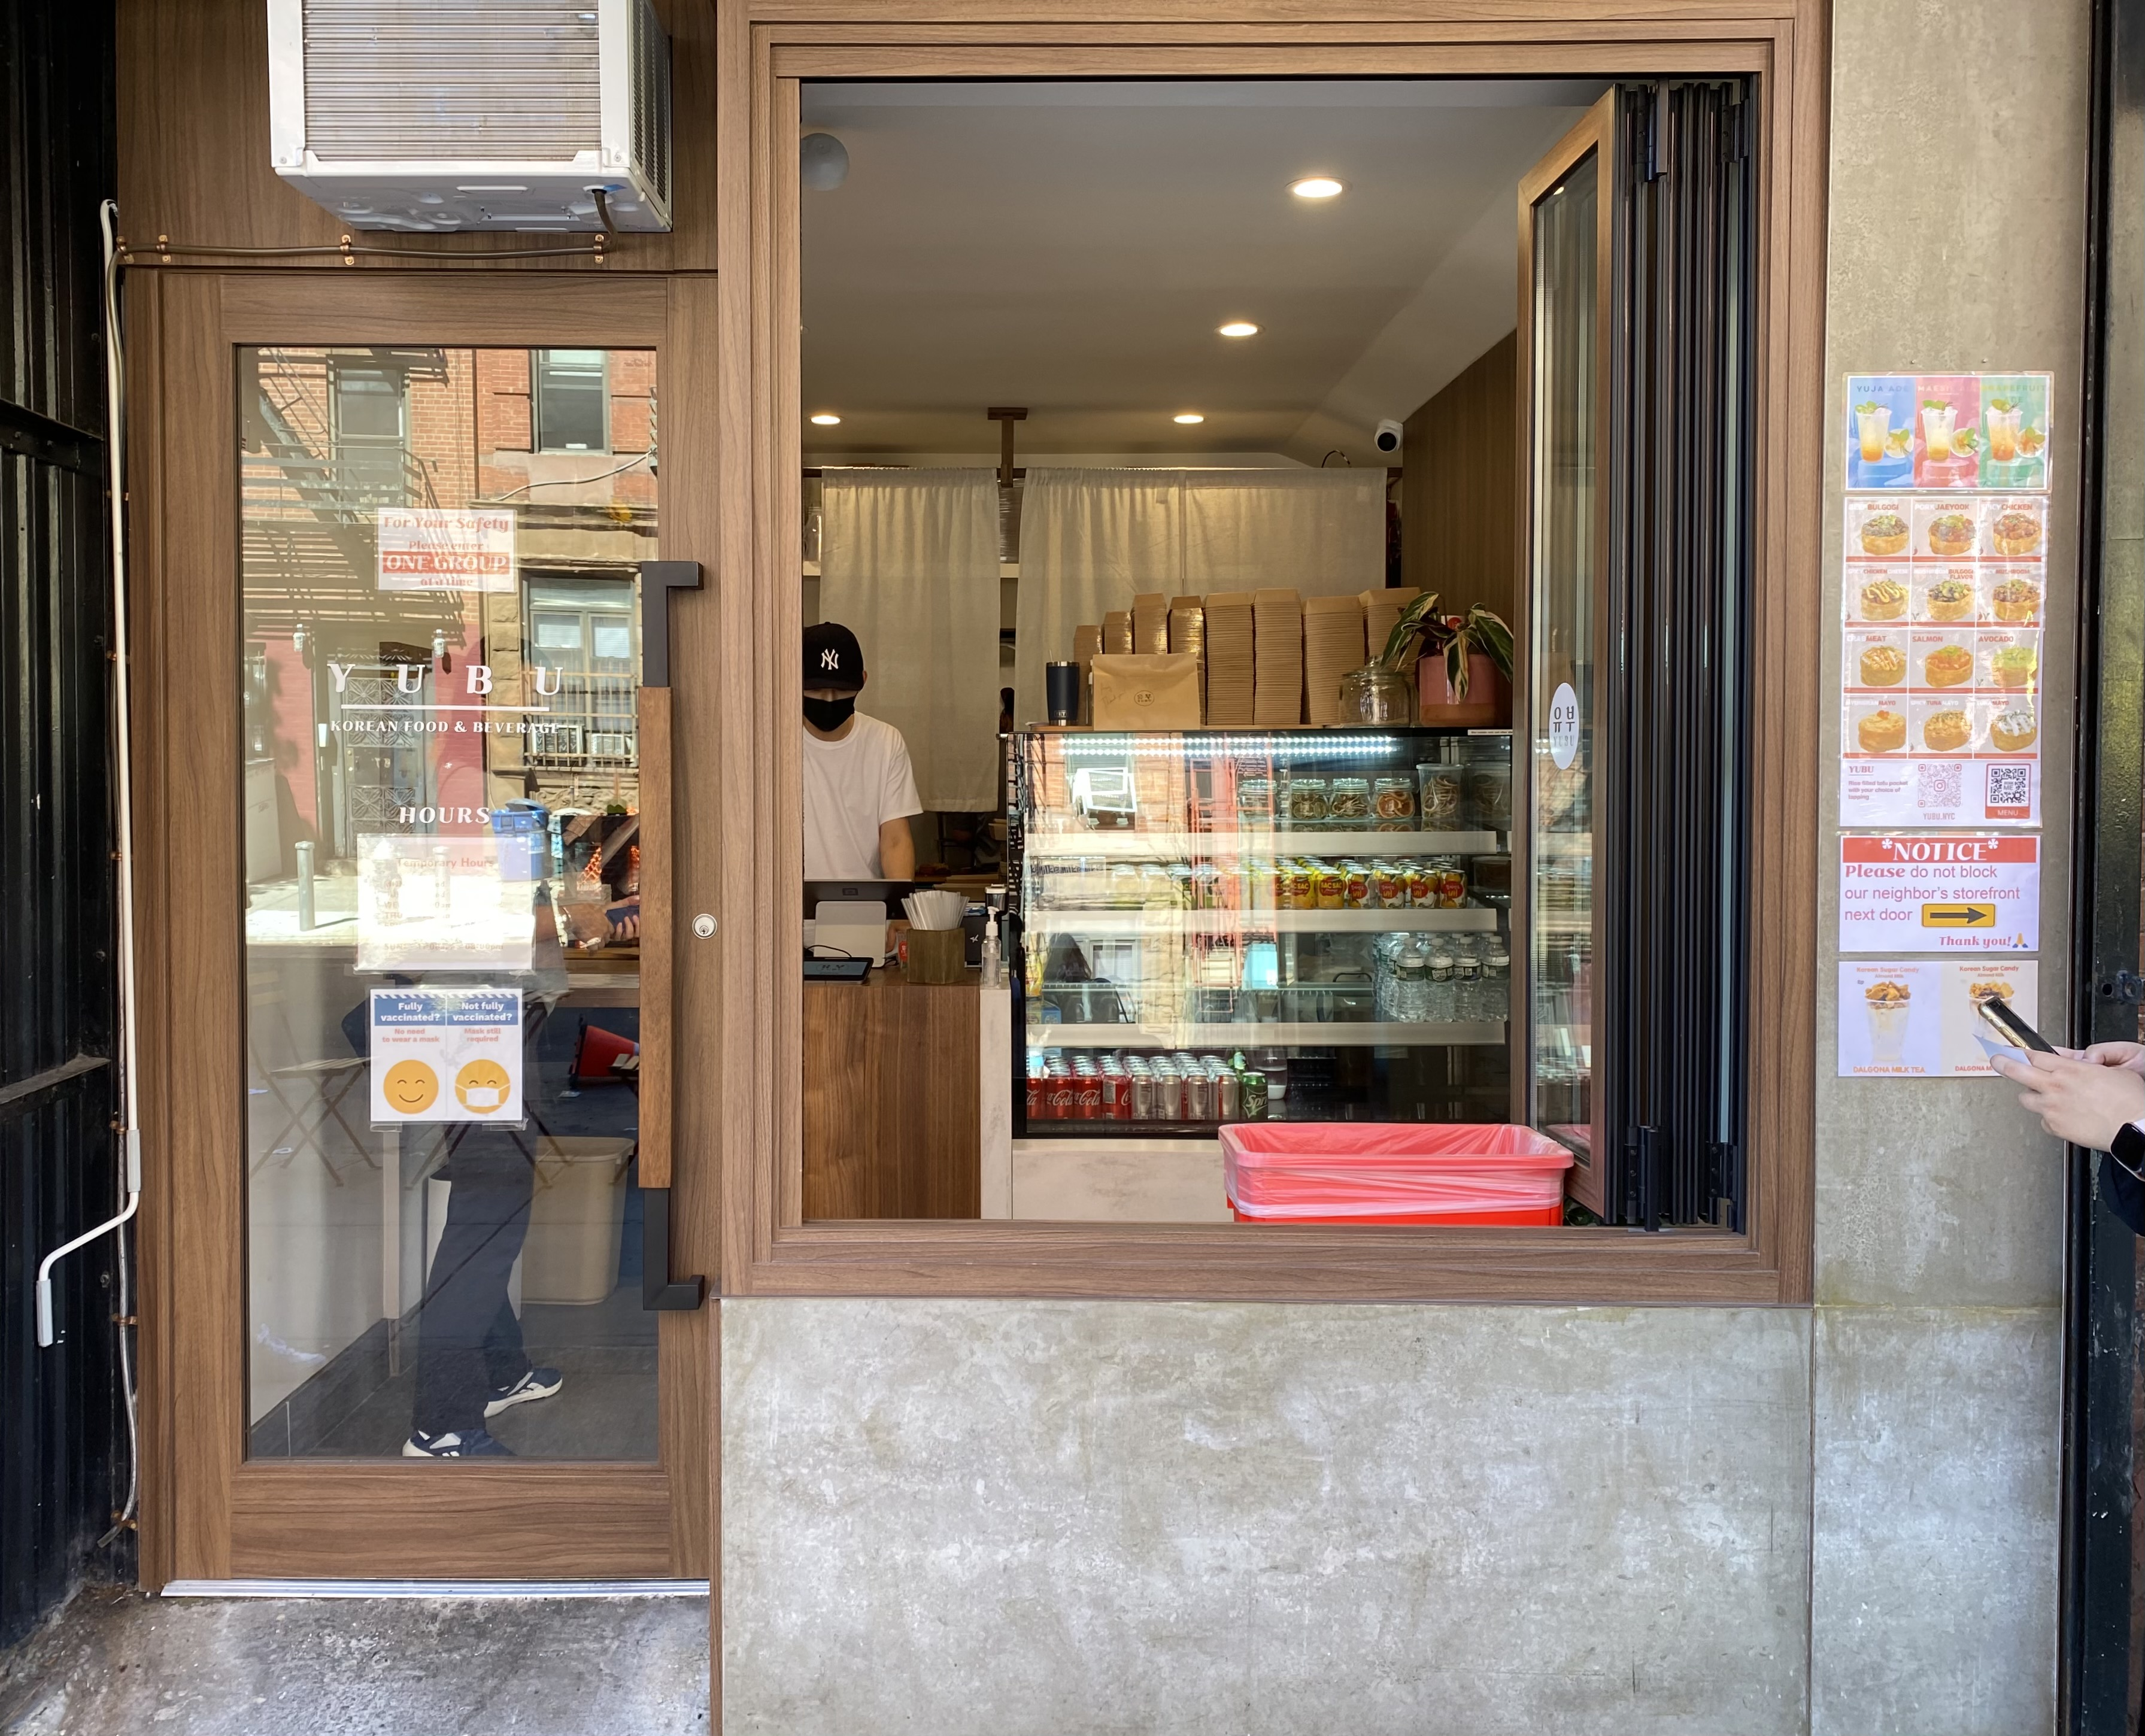 The inside of a small restaurant and a cashier is visible through an open window on a sunny day